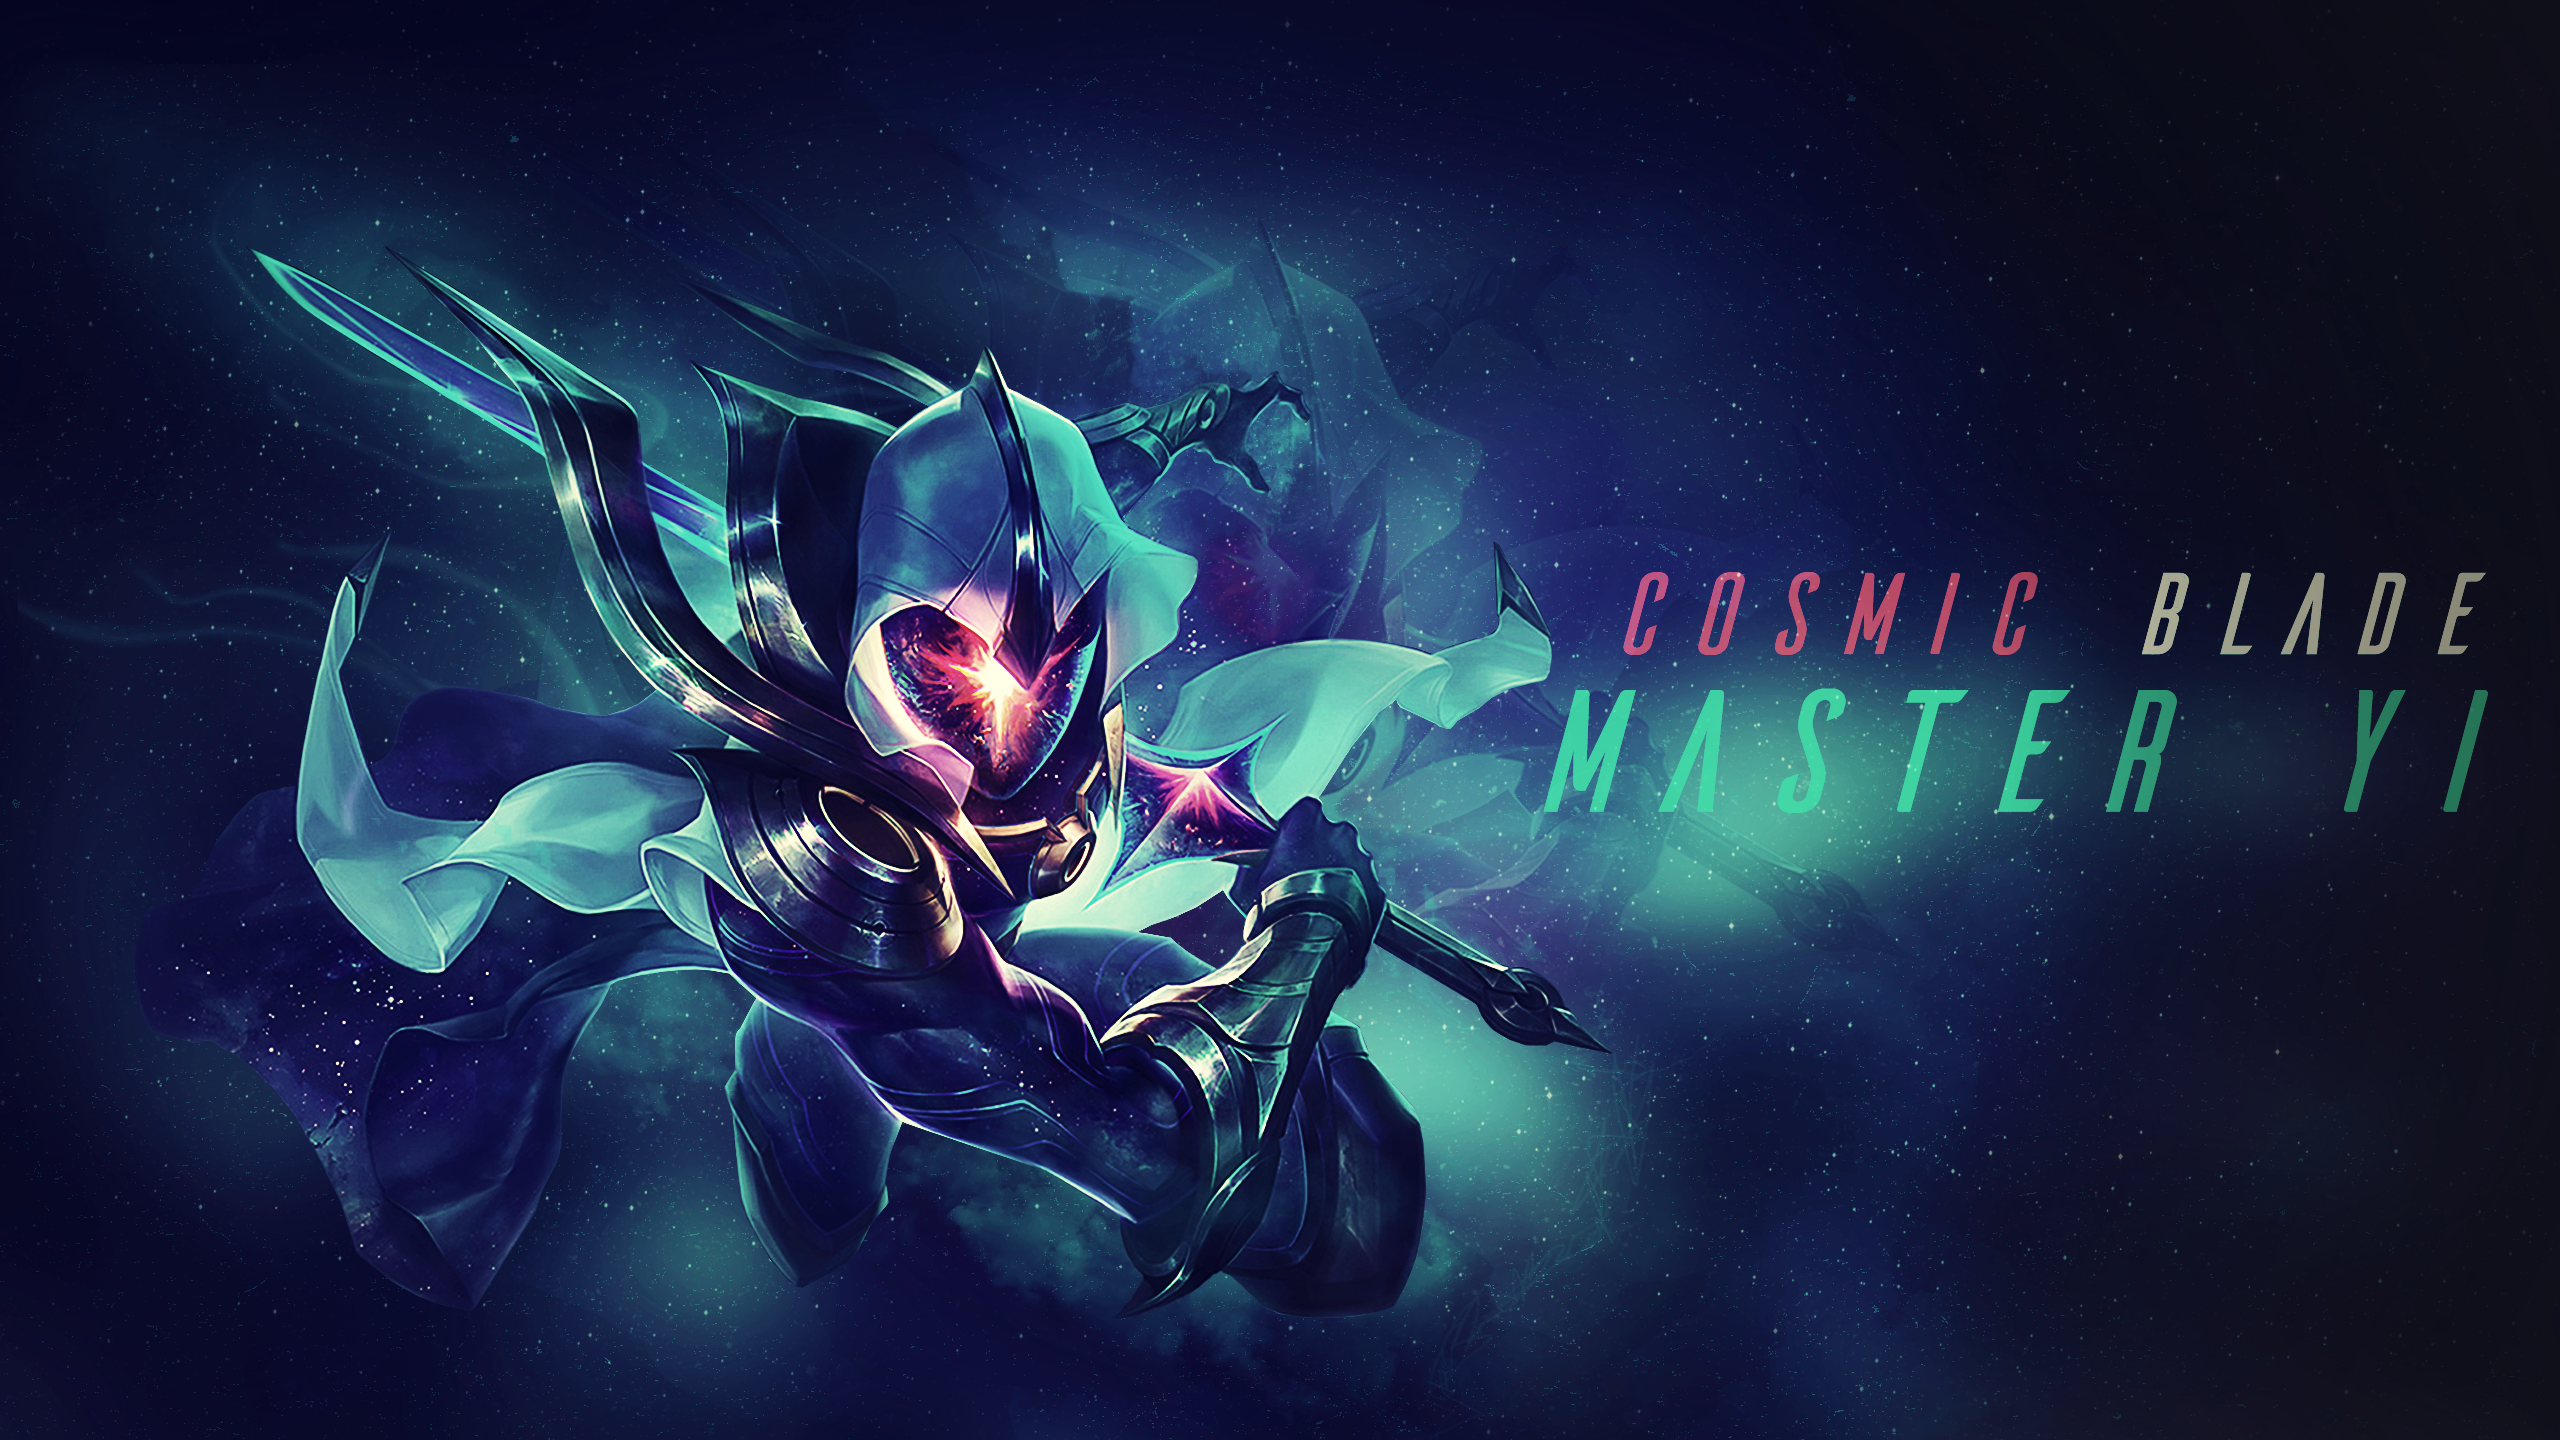 Cosmic Blade Master Yi Wallpaper By Cobrainfinite On Deviantart